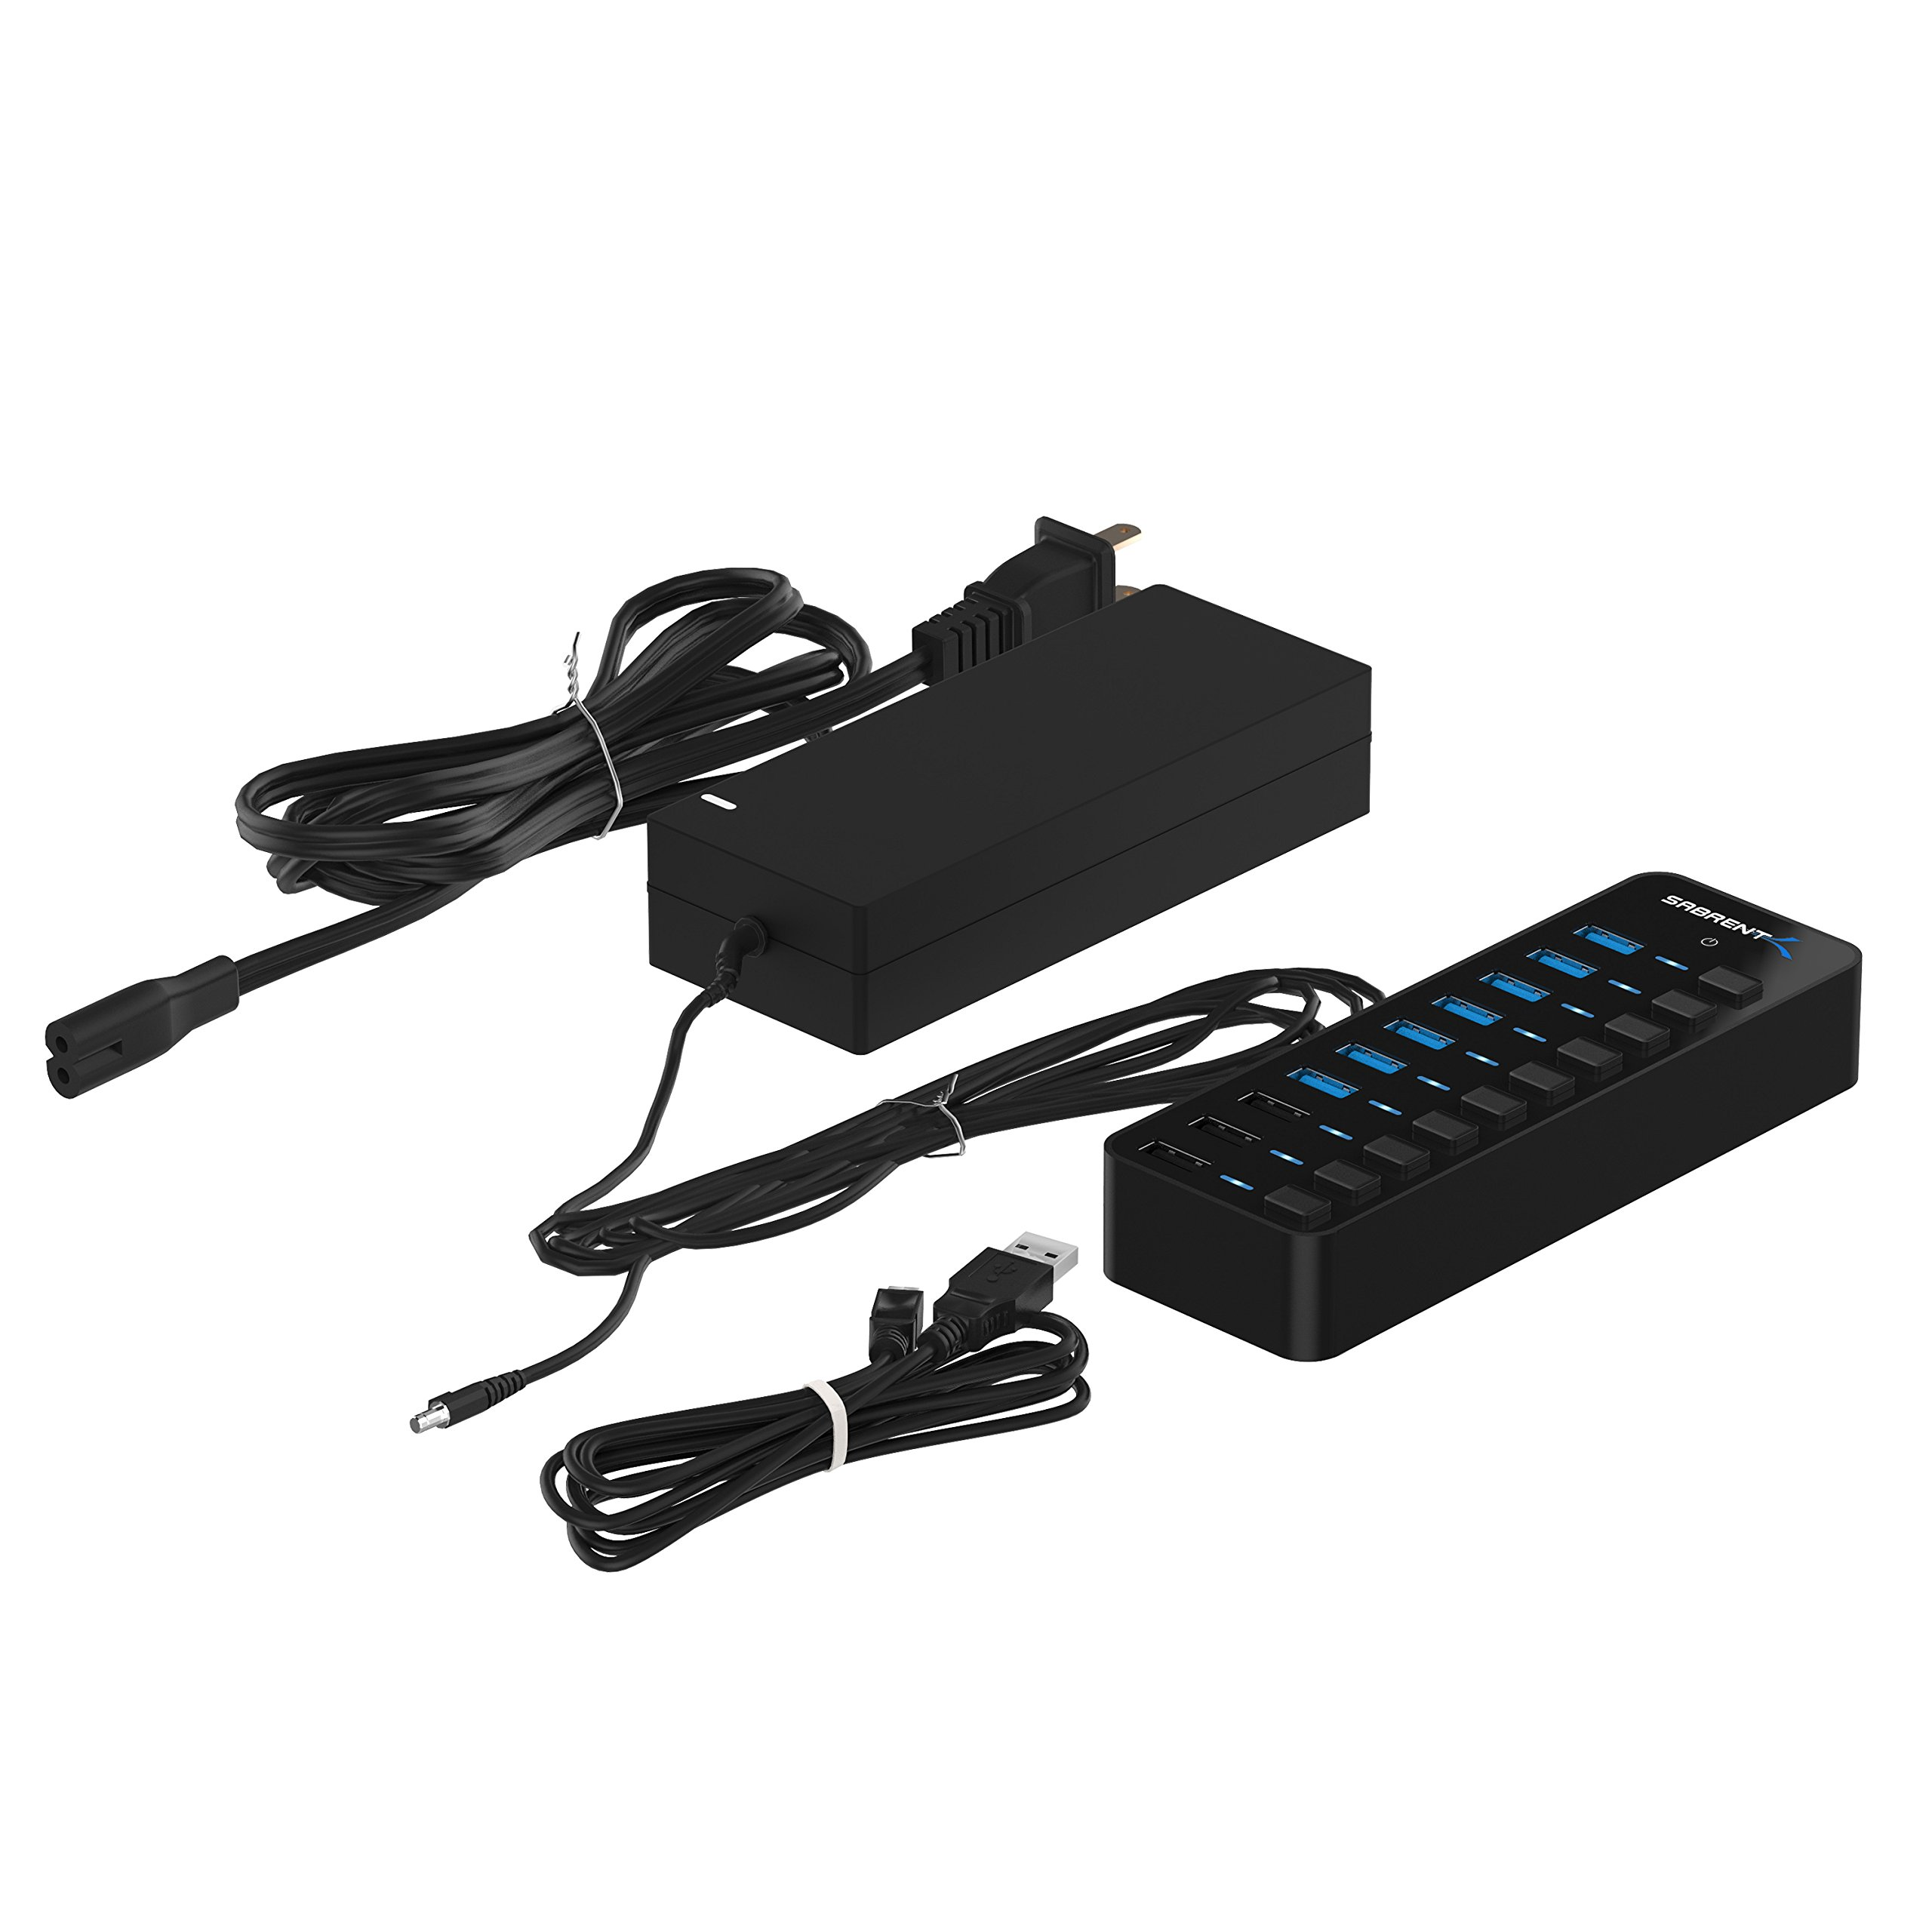 Sabrent 60W 7-Port USB 3.0 Hub + 3 Smart Charging Ports with Individual Power Switches and LEDs includes 60W 12V/5A power adapter (HB-B7C3) by Sabrent (Image #8)